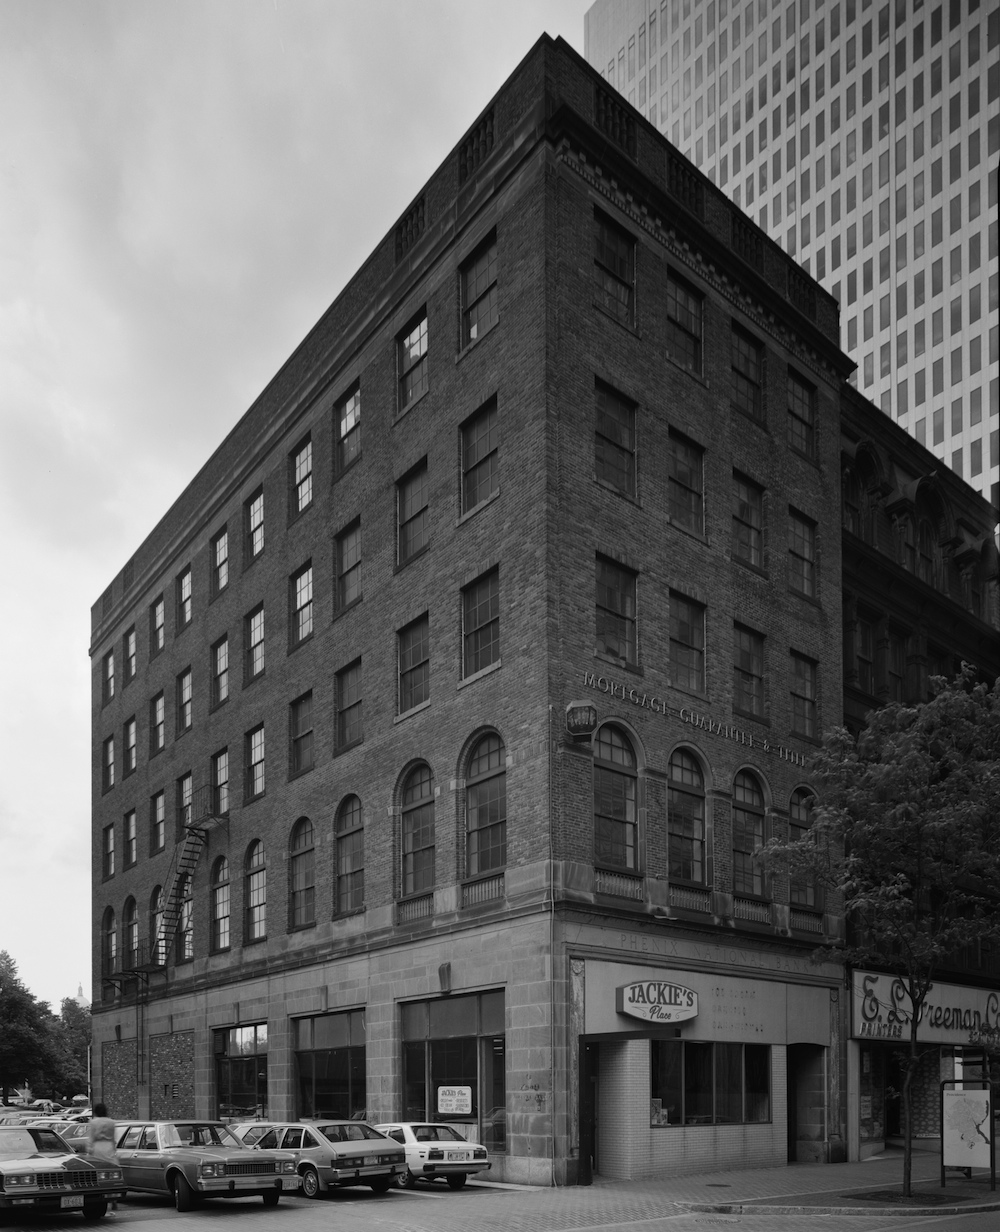 Former offices of the  Phenix National Bank at 85-89 Westminster Street, in a circa 1970s photograph (from the Library of Congress). The bank's name is visible above the first floor, on the right side of this image.